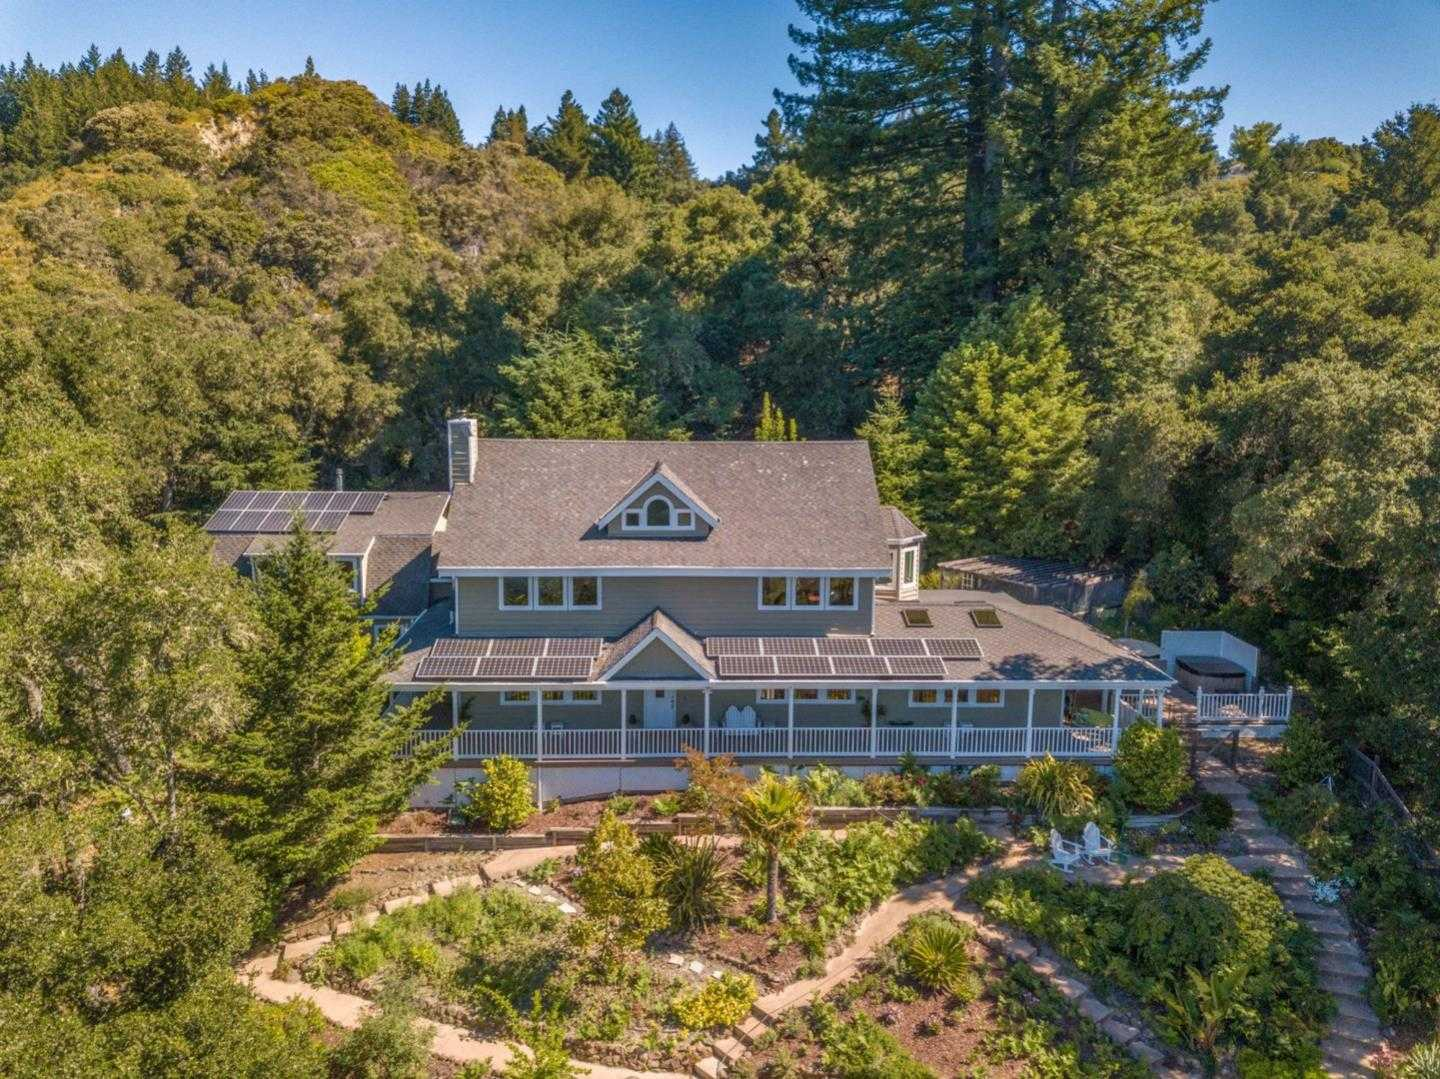 $1,799,900 - 4Br/4Ba -  for Sale in Scotts Valley